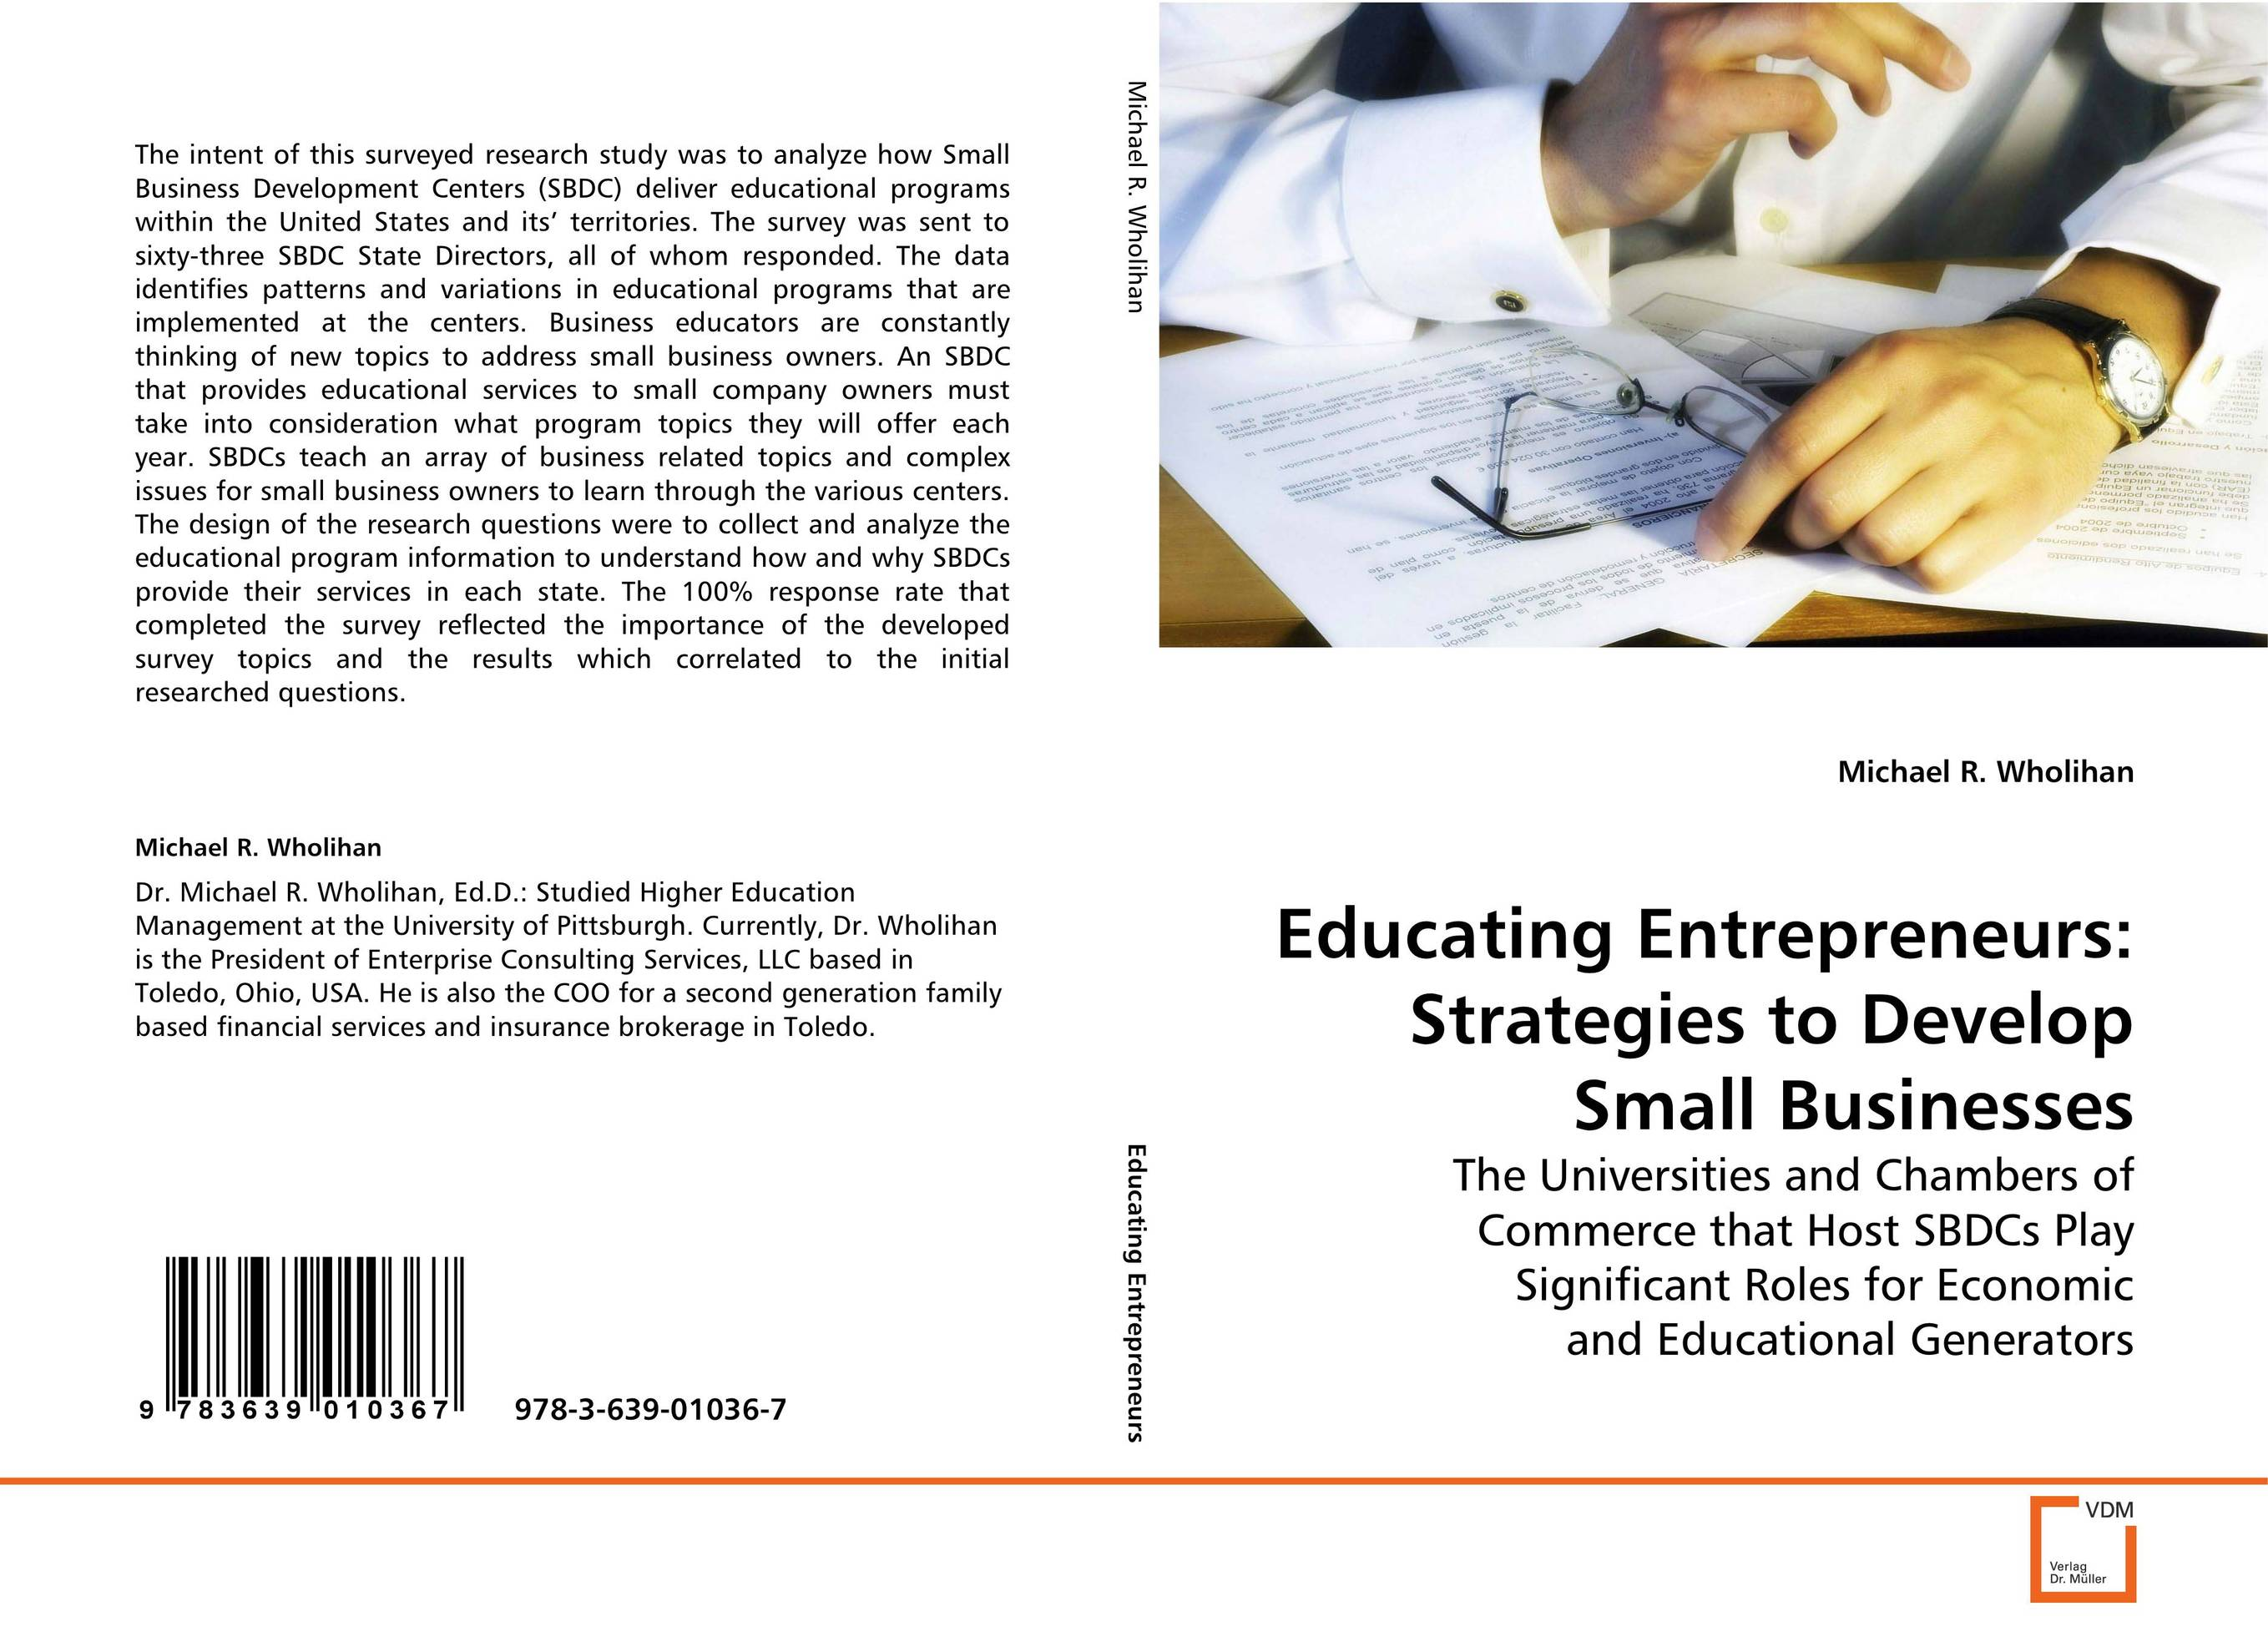 Educating Entrepreneurs: Strategies to Develop Small Businesses